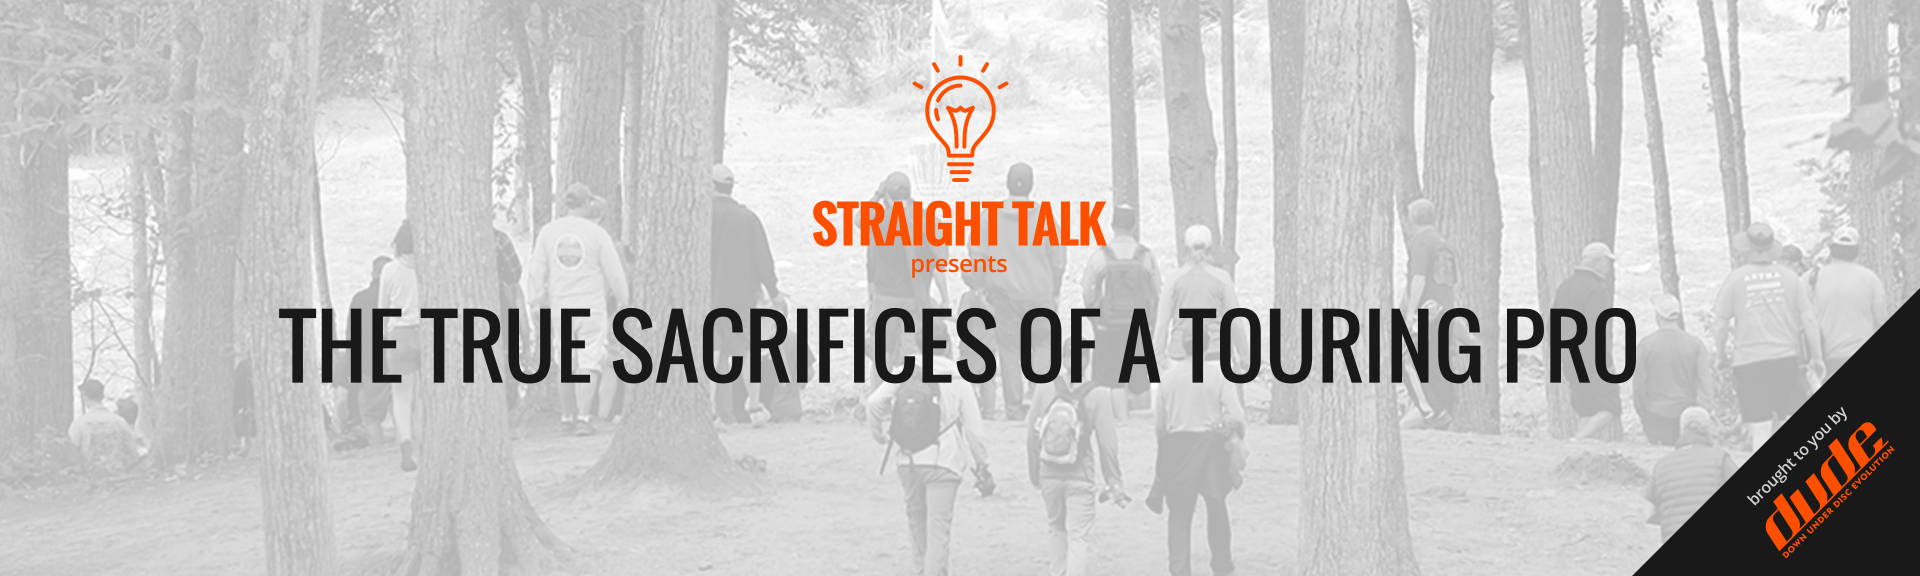 Dude Clothing Straight Talk True Sacrifices of a touring pro Disc Golf